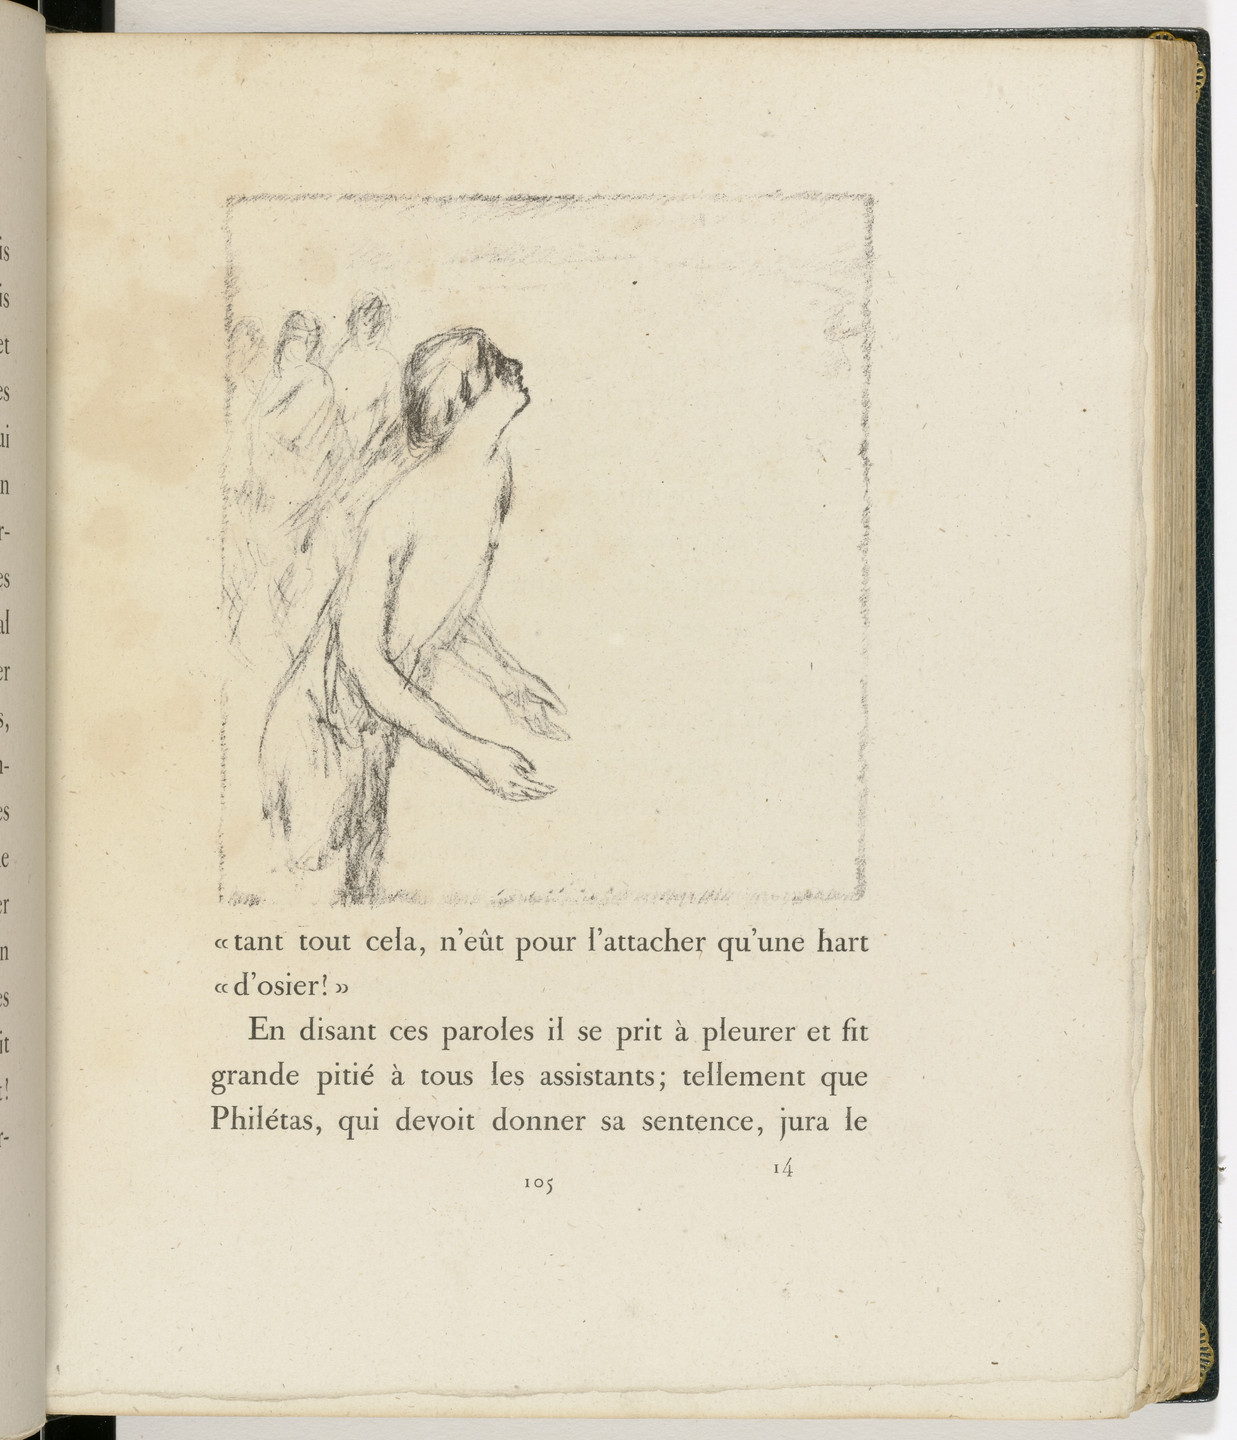 Pierre Bonnard. In-text plate (page 105) from Daphnis et Chloé. 1902